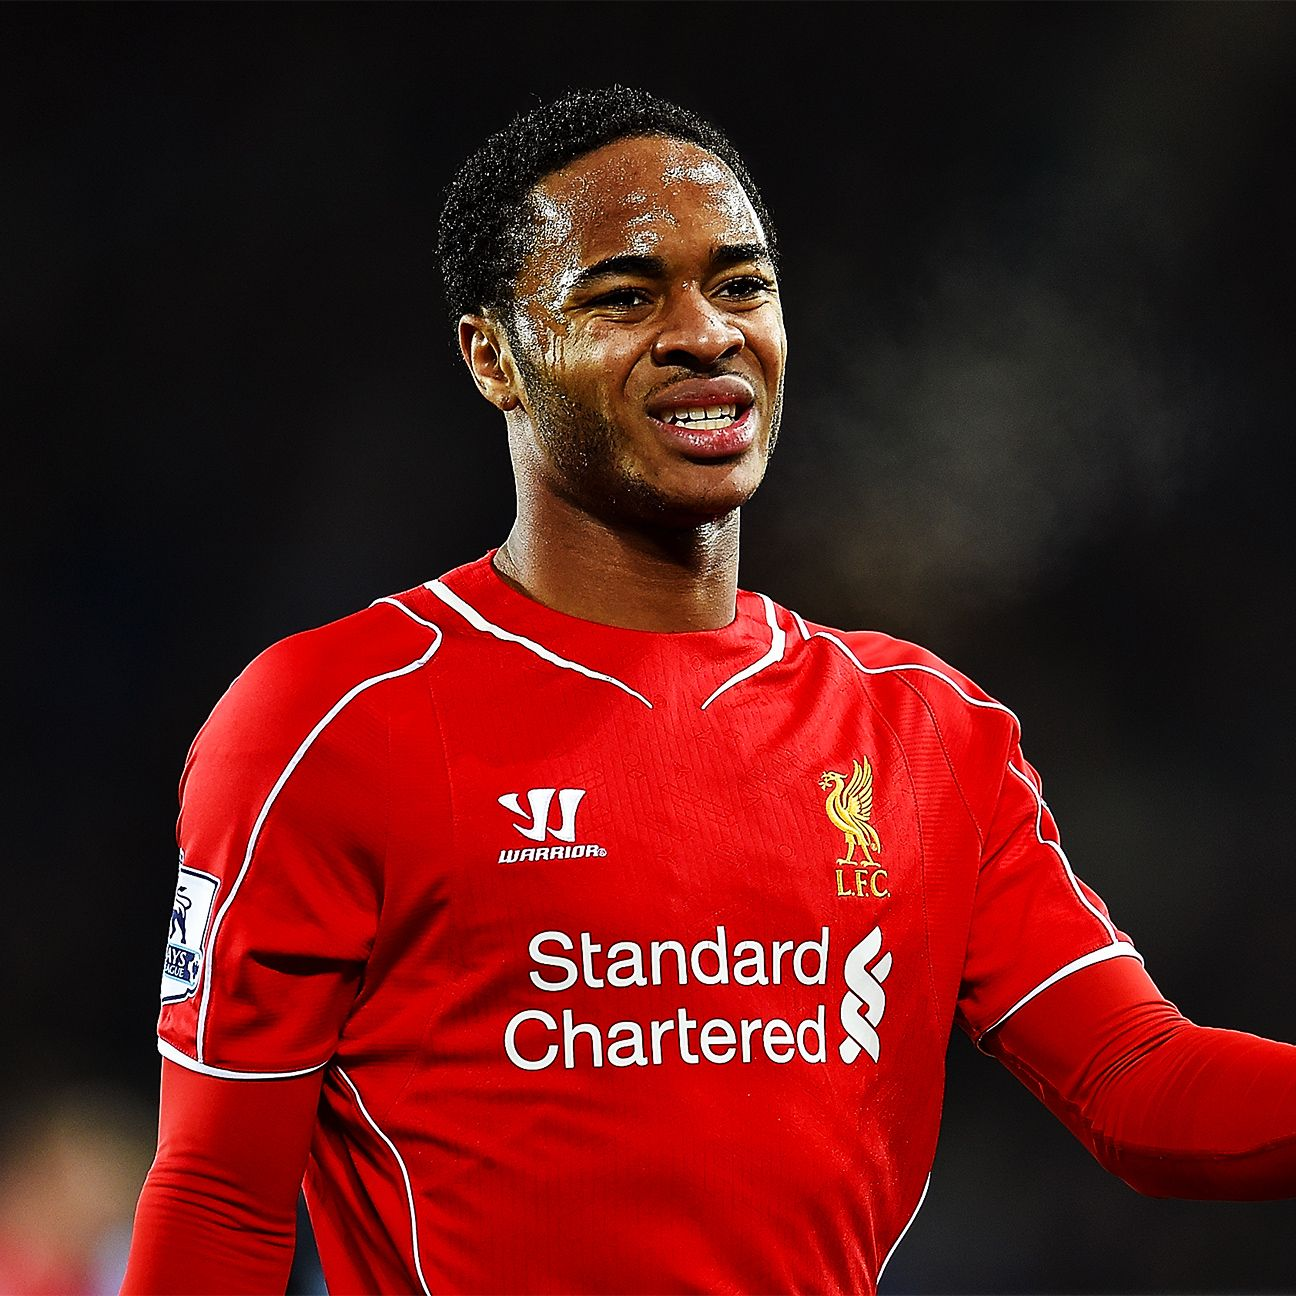 Raheem Sterling is a beloved figure at Anfield and a key member of Liverpool's attack, but at 20 years old he may lack the maturity to join another top club in England or in Europe.